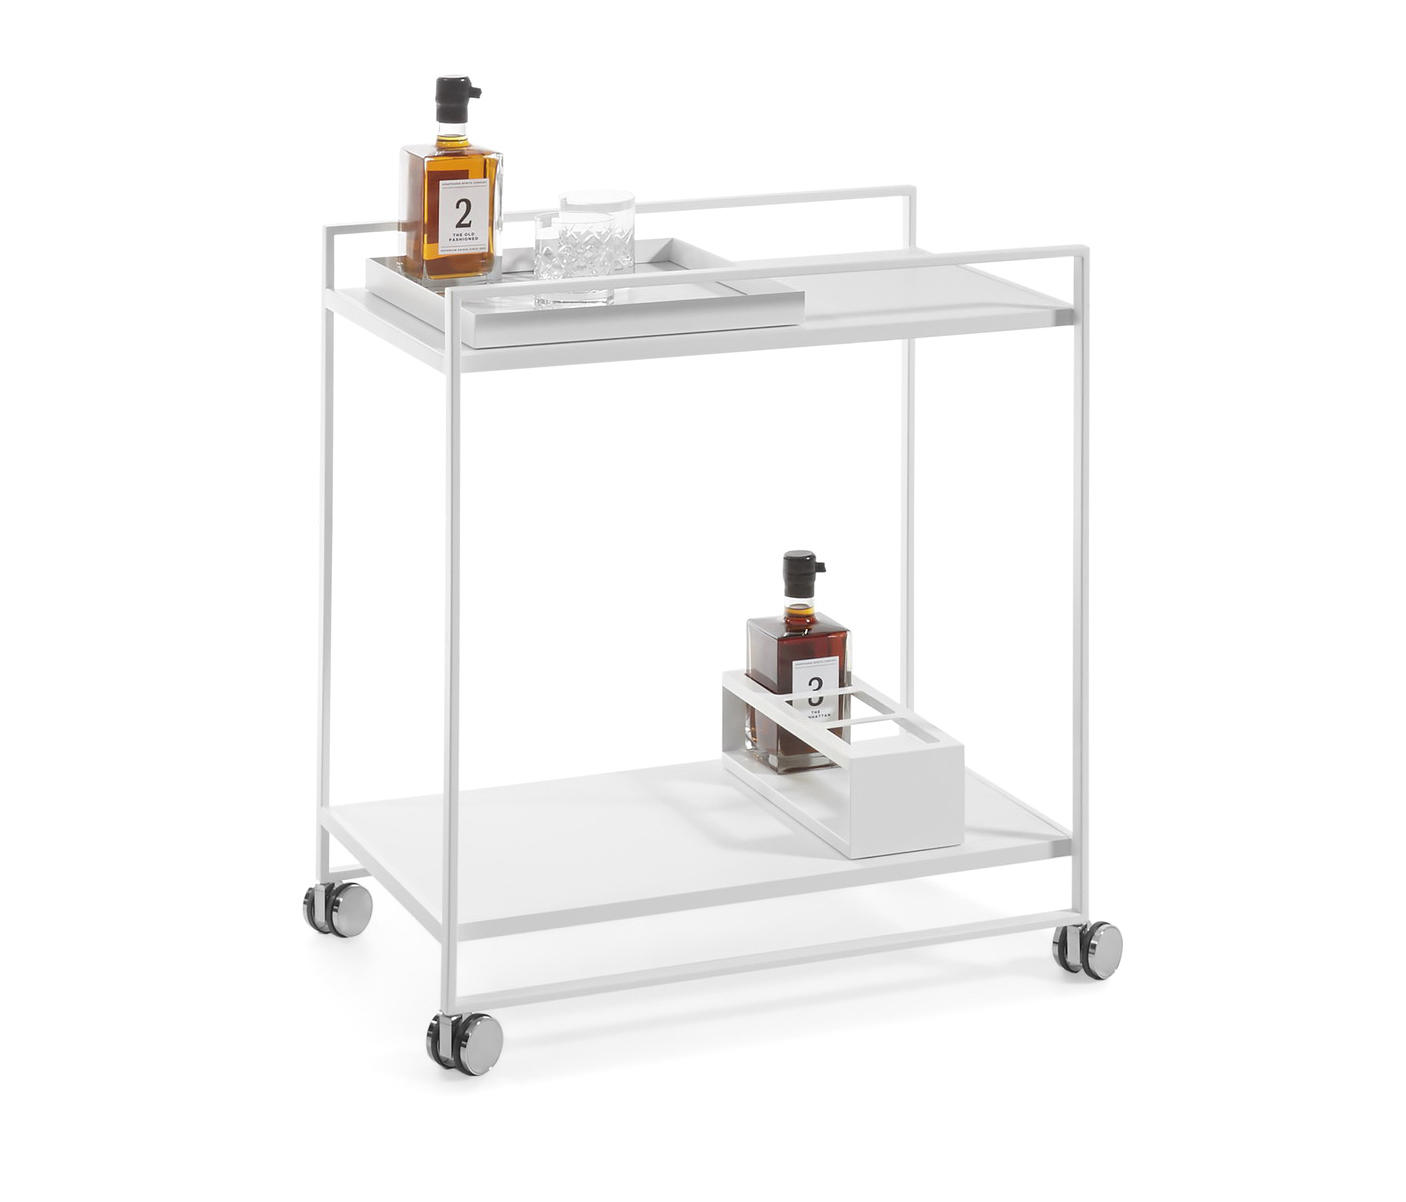 Flat Trolley Table By Yomei | Trolleys